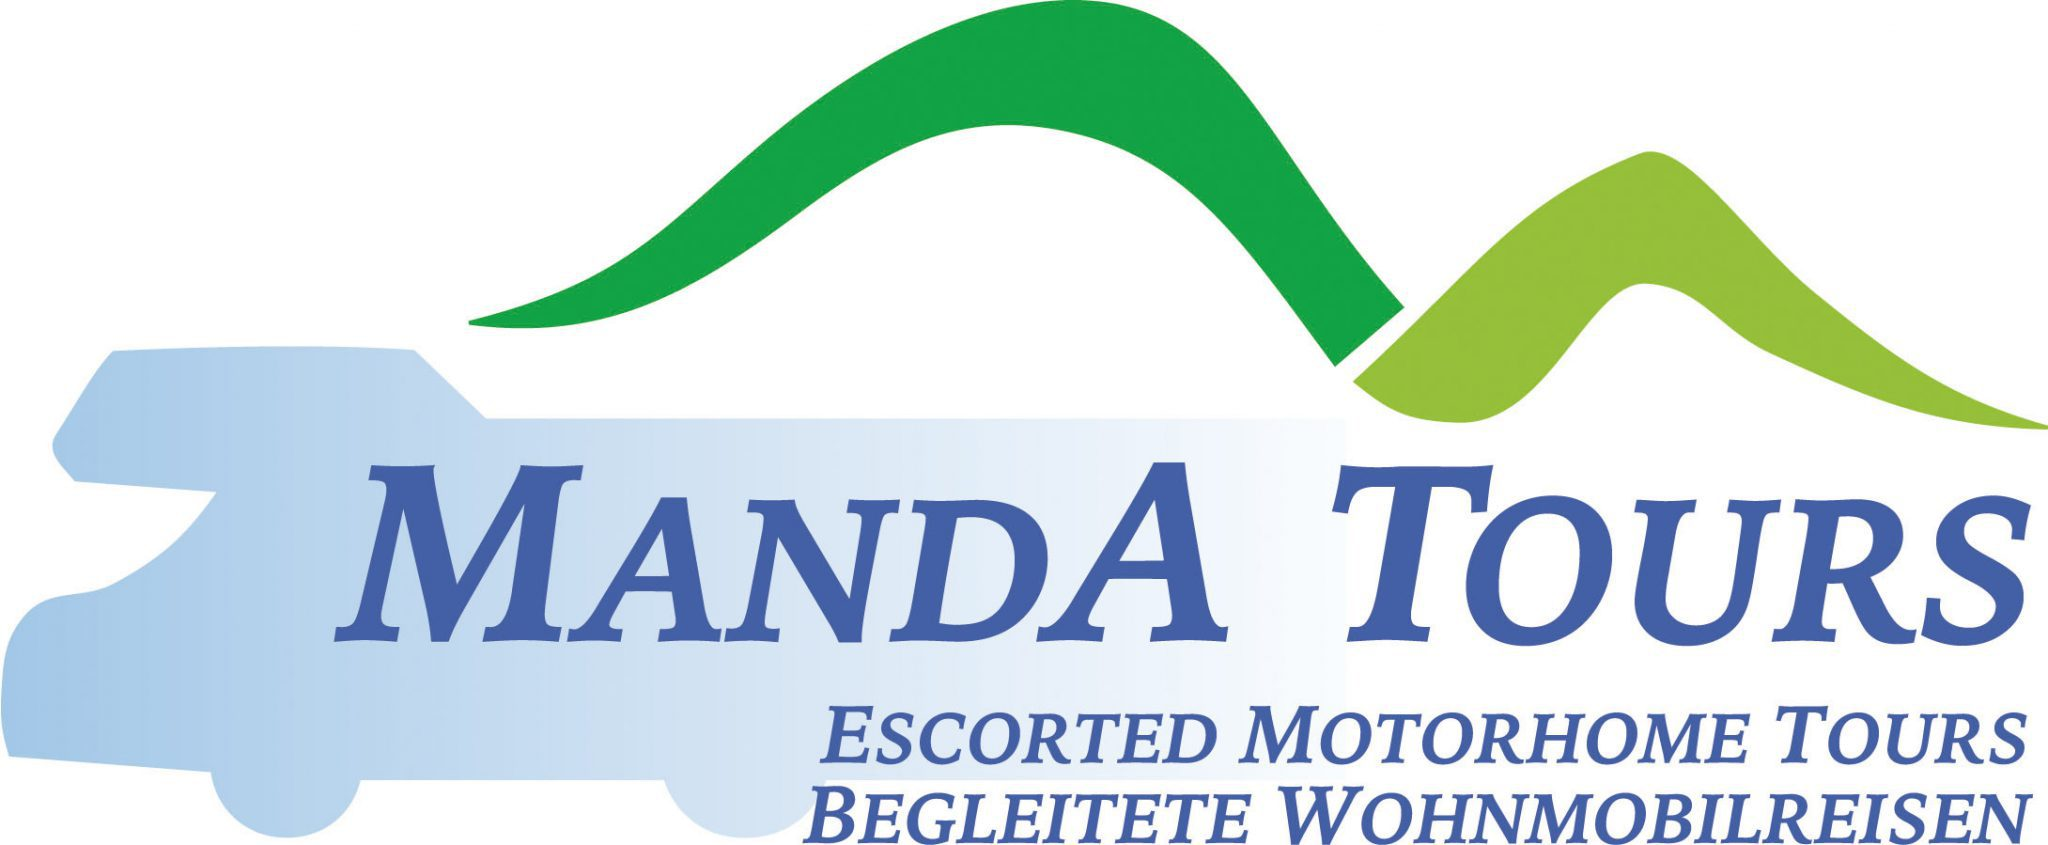 Escorted European Motorhome Tours Travelling the clever way accompanied by MandA Tours